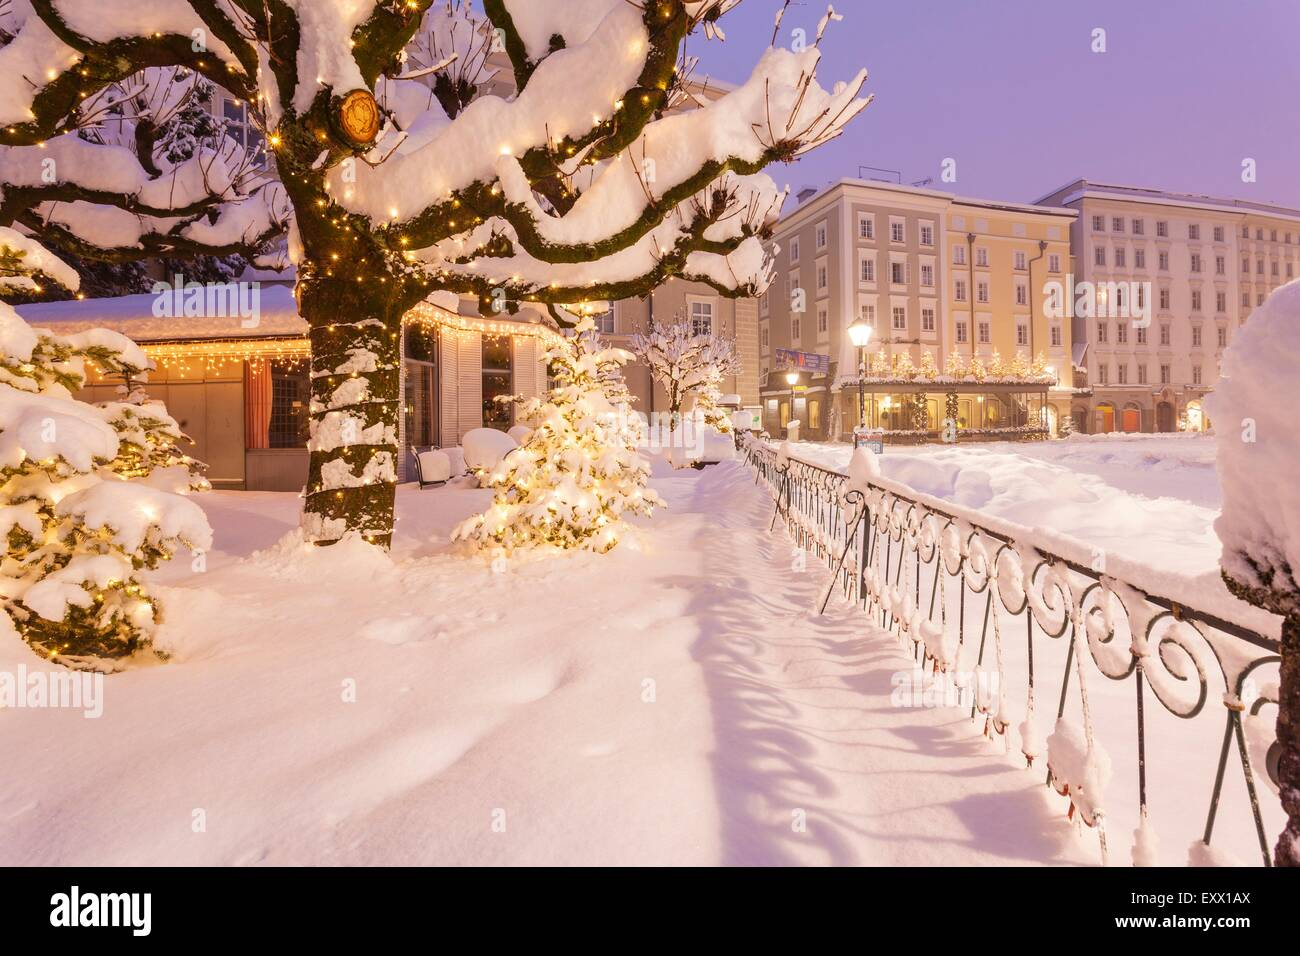 Alter Markt in winter, Salzburg, Austria, Europe - Stock Image